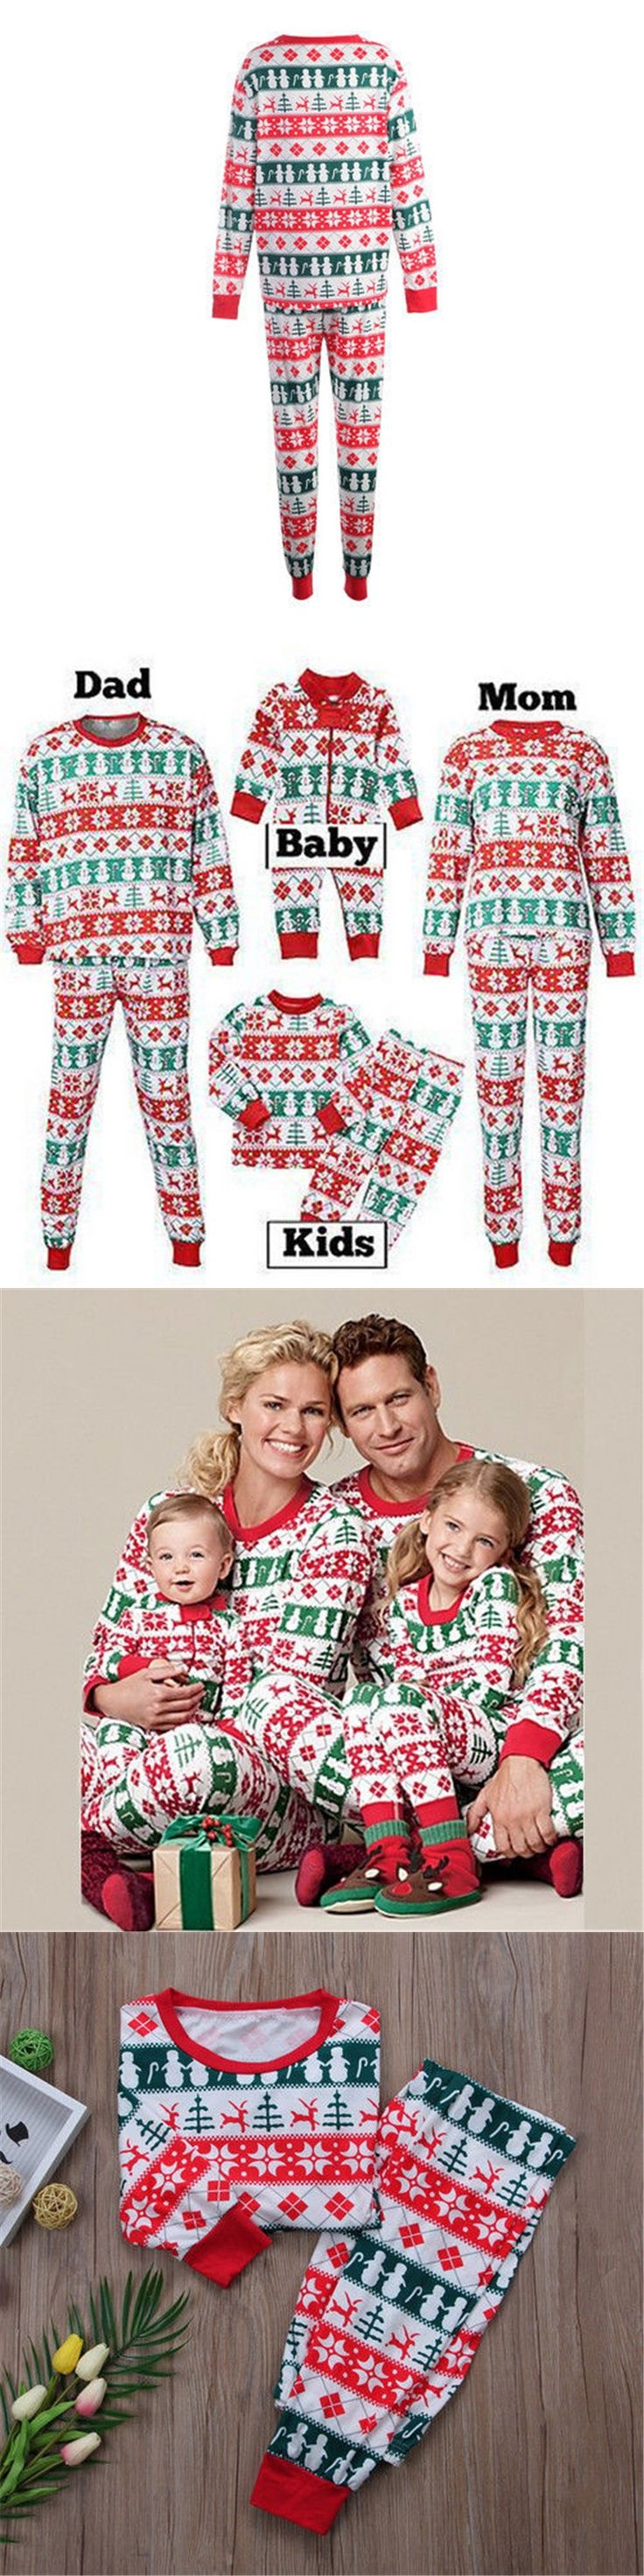 Family Matching Christmas Pajamas Set 2017 New Bebes Xmas Women Men Baby Kids Sleepwear Nightwear Cute Family Match Pyjamas Sets